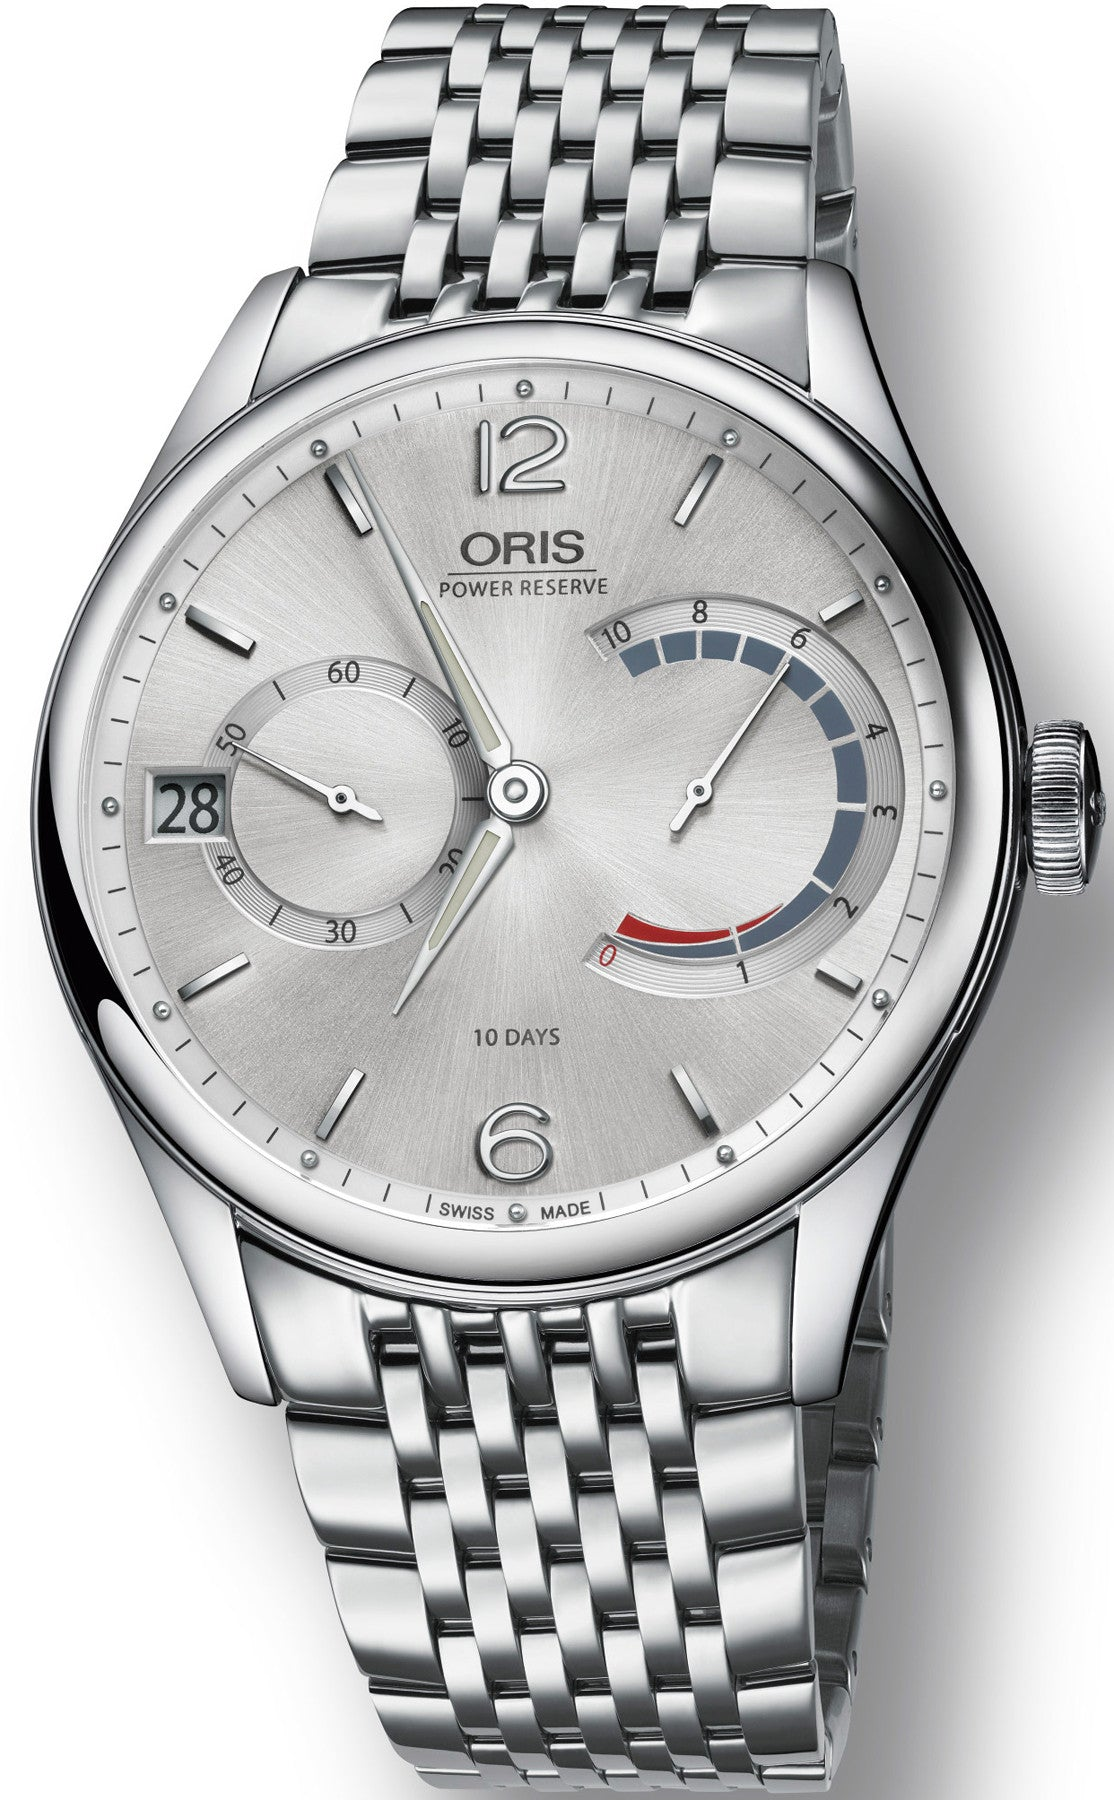 Oris Watch Calibre 111 Bracelet